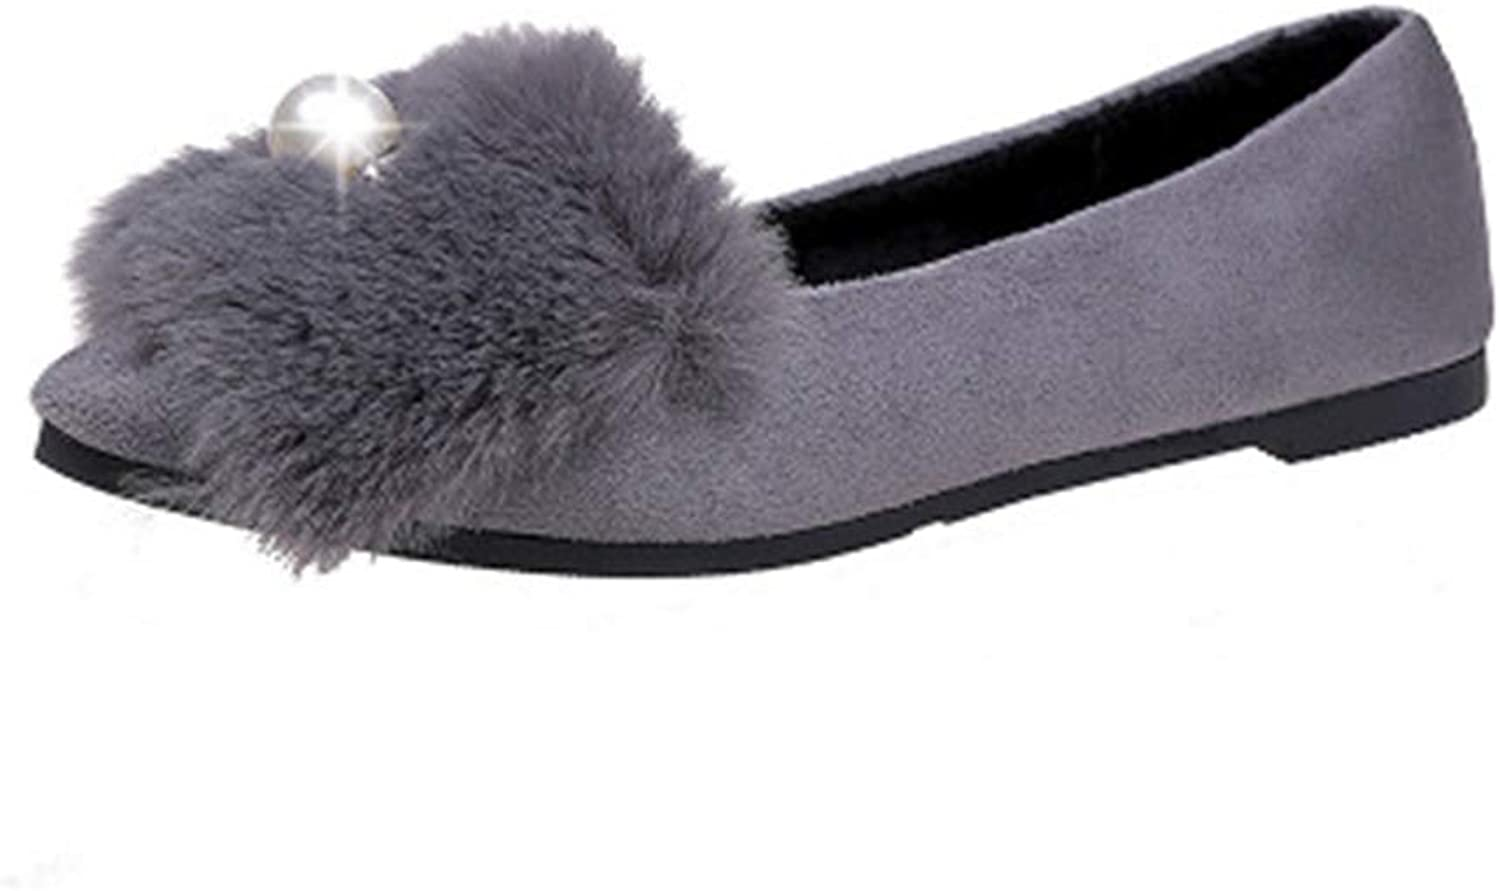 Women's Pointed Flat shoes Shallow Flat Loafer Casual Soft shoes